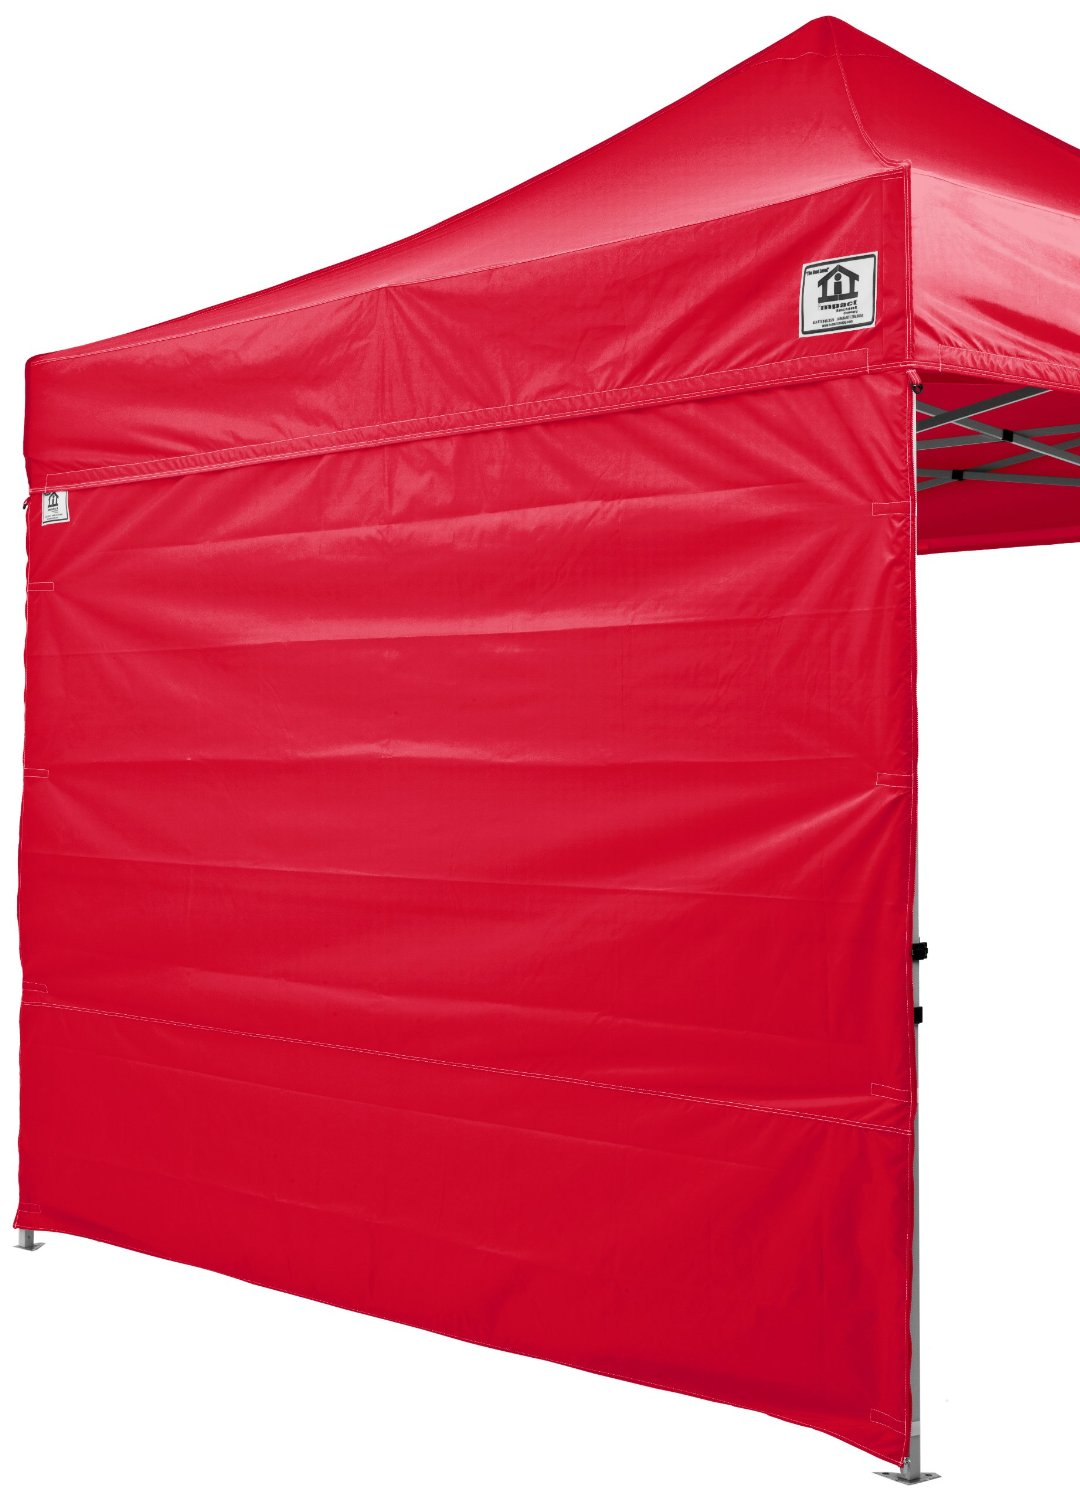 Impact Canopy Side Wall Kit, Canopy Walls for 10x10 Instant Pop Up Canopy Tent, Walls Only, 2 Pack, Red